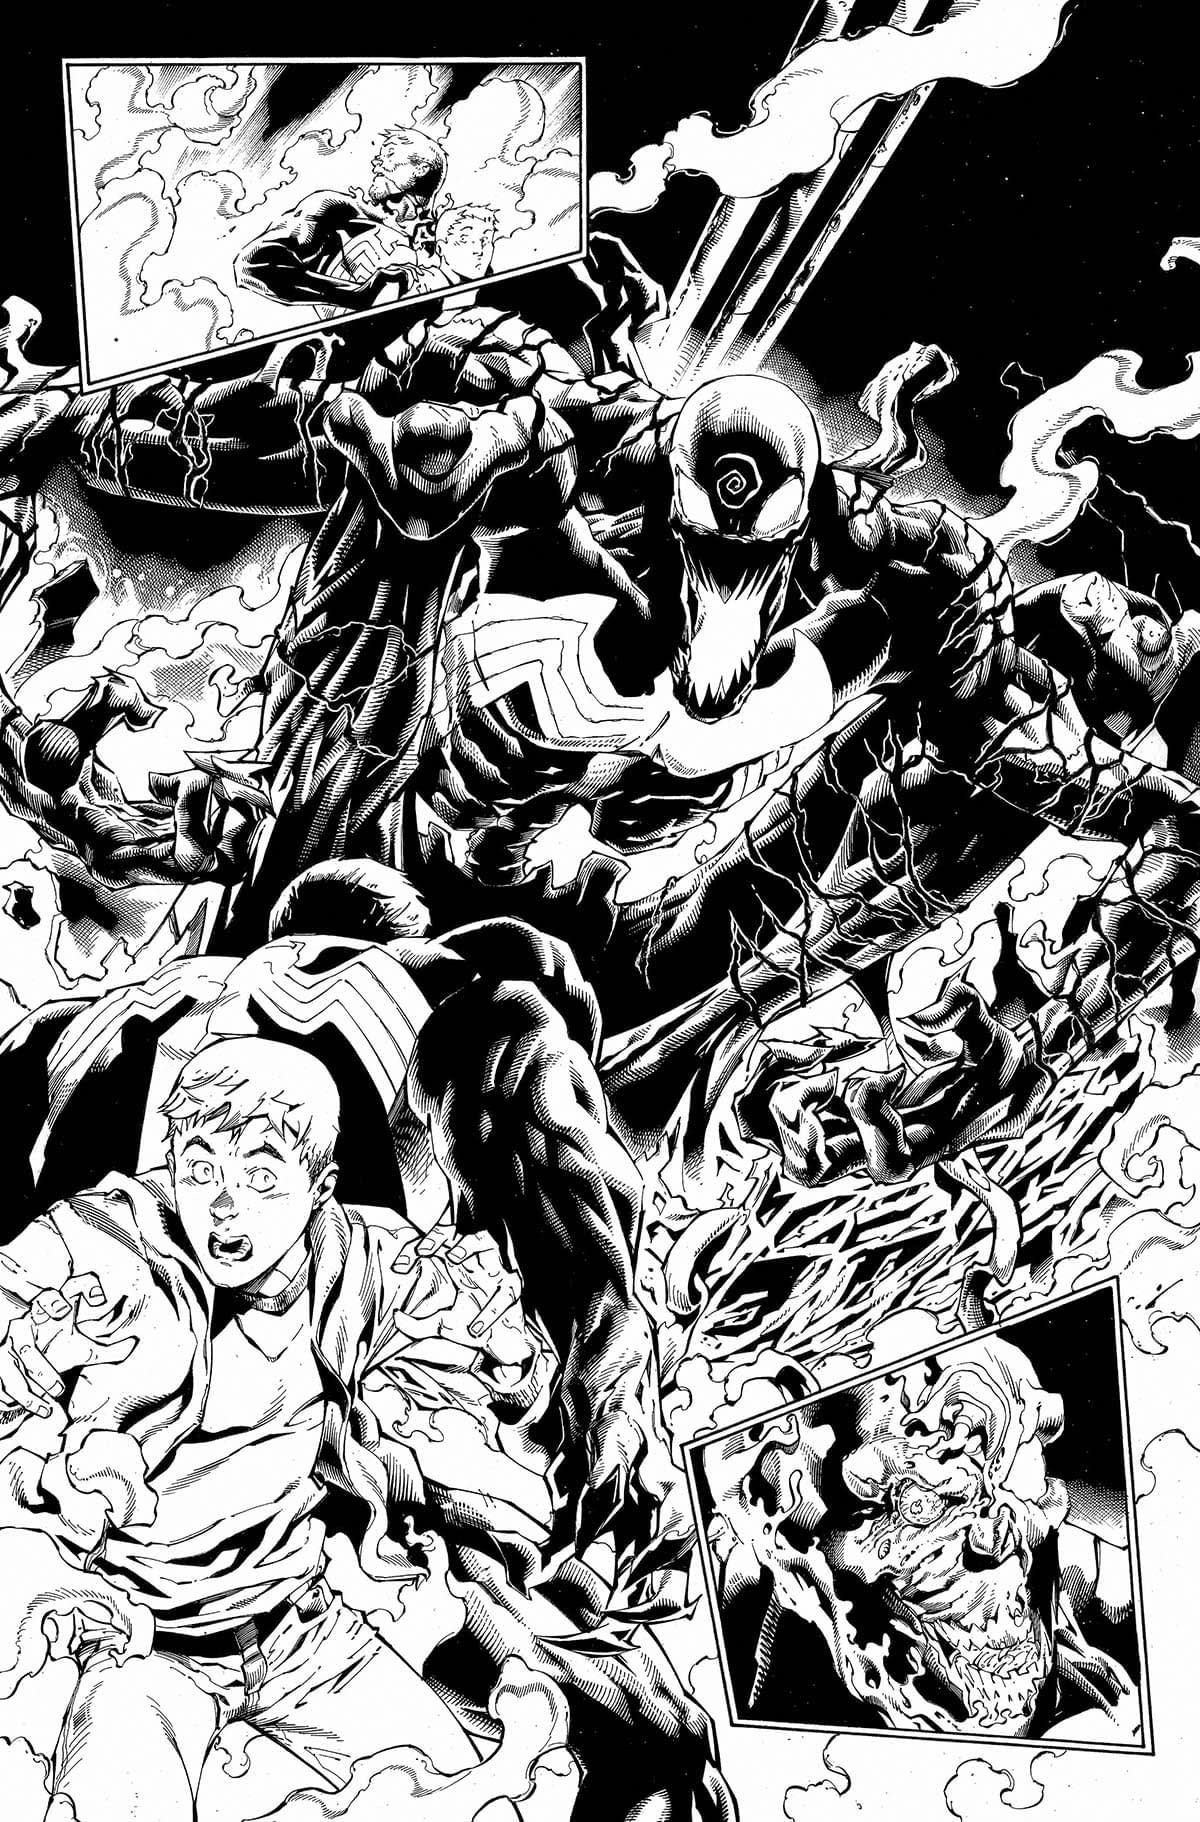 Absolute Carnage #1 Gets a Digital Director's Cut